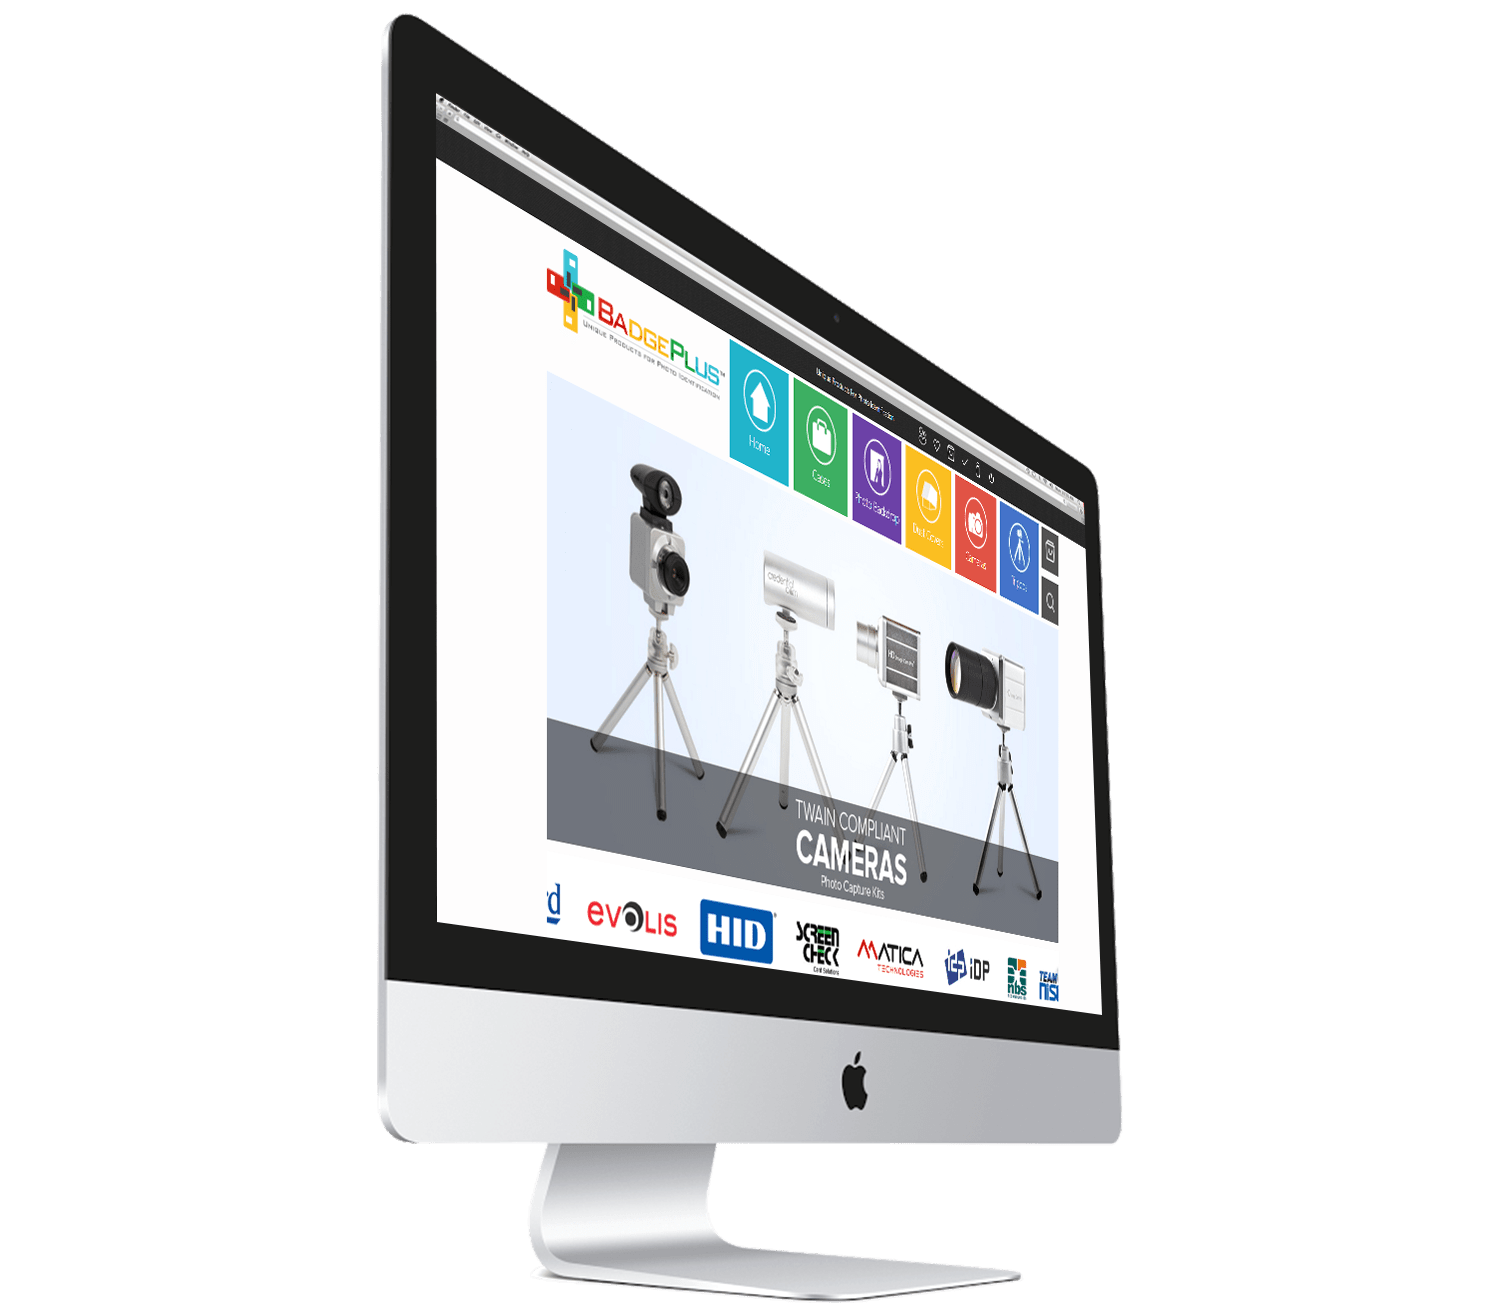 Want to create an engaging eCommerce website design? We specialize in creating eCommerce websites